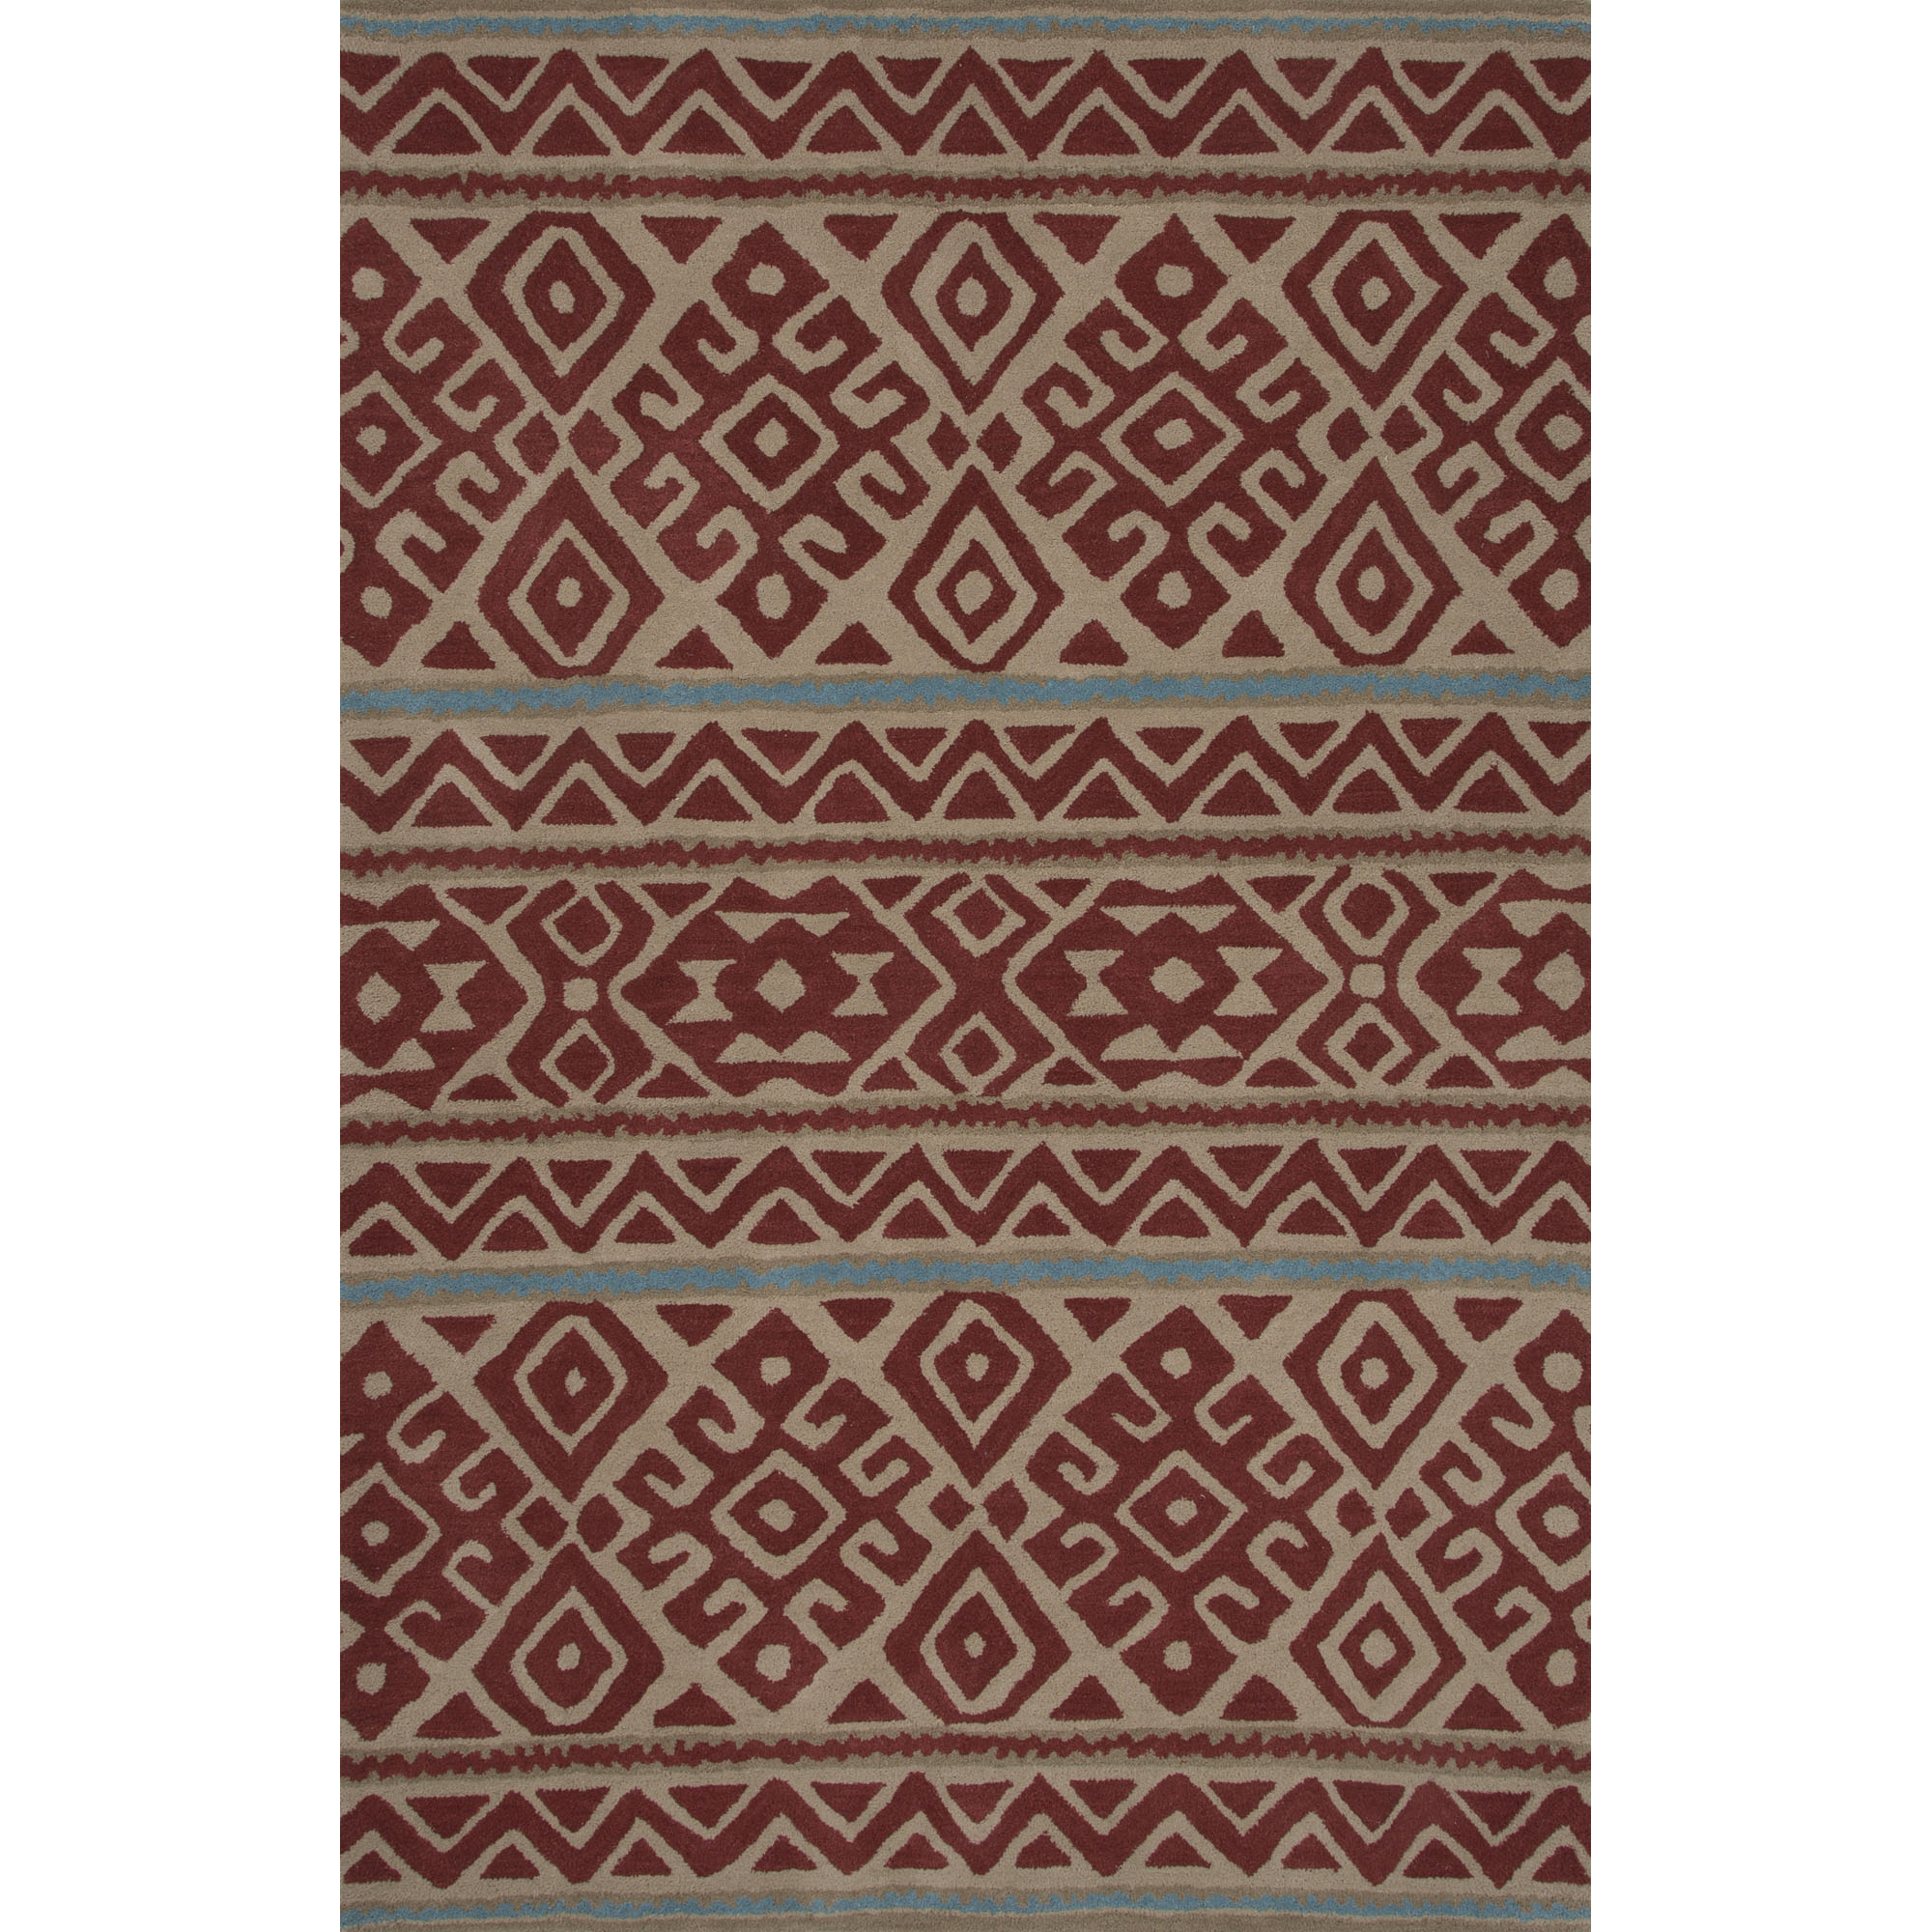 JAIPUR Rugs Traditions Made Modern Tufted 2 x 3 Rug - Item Number: RUG122210